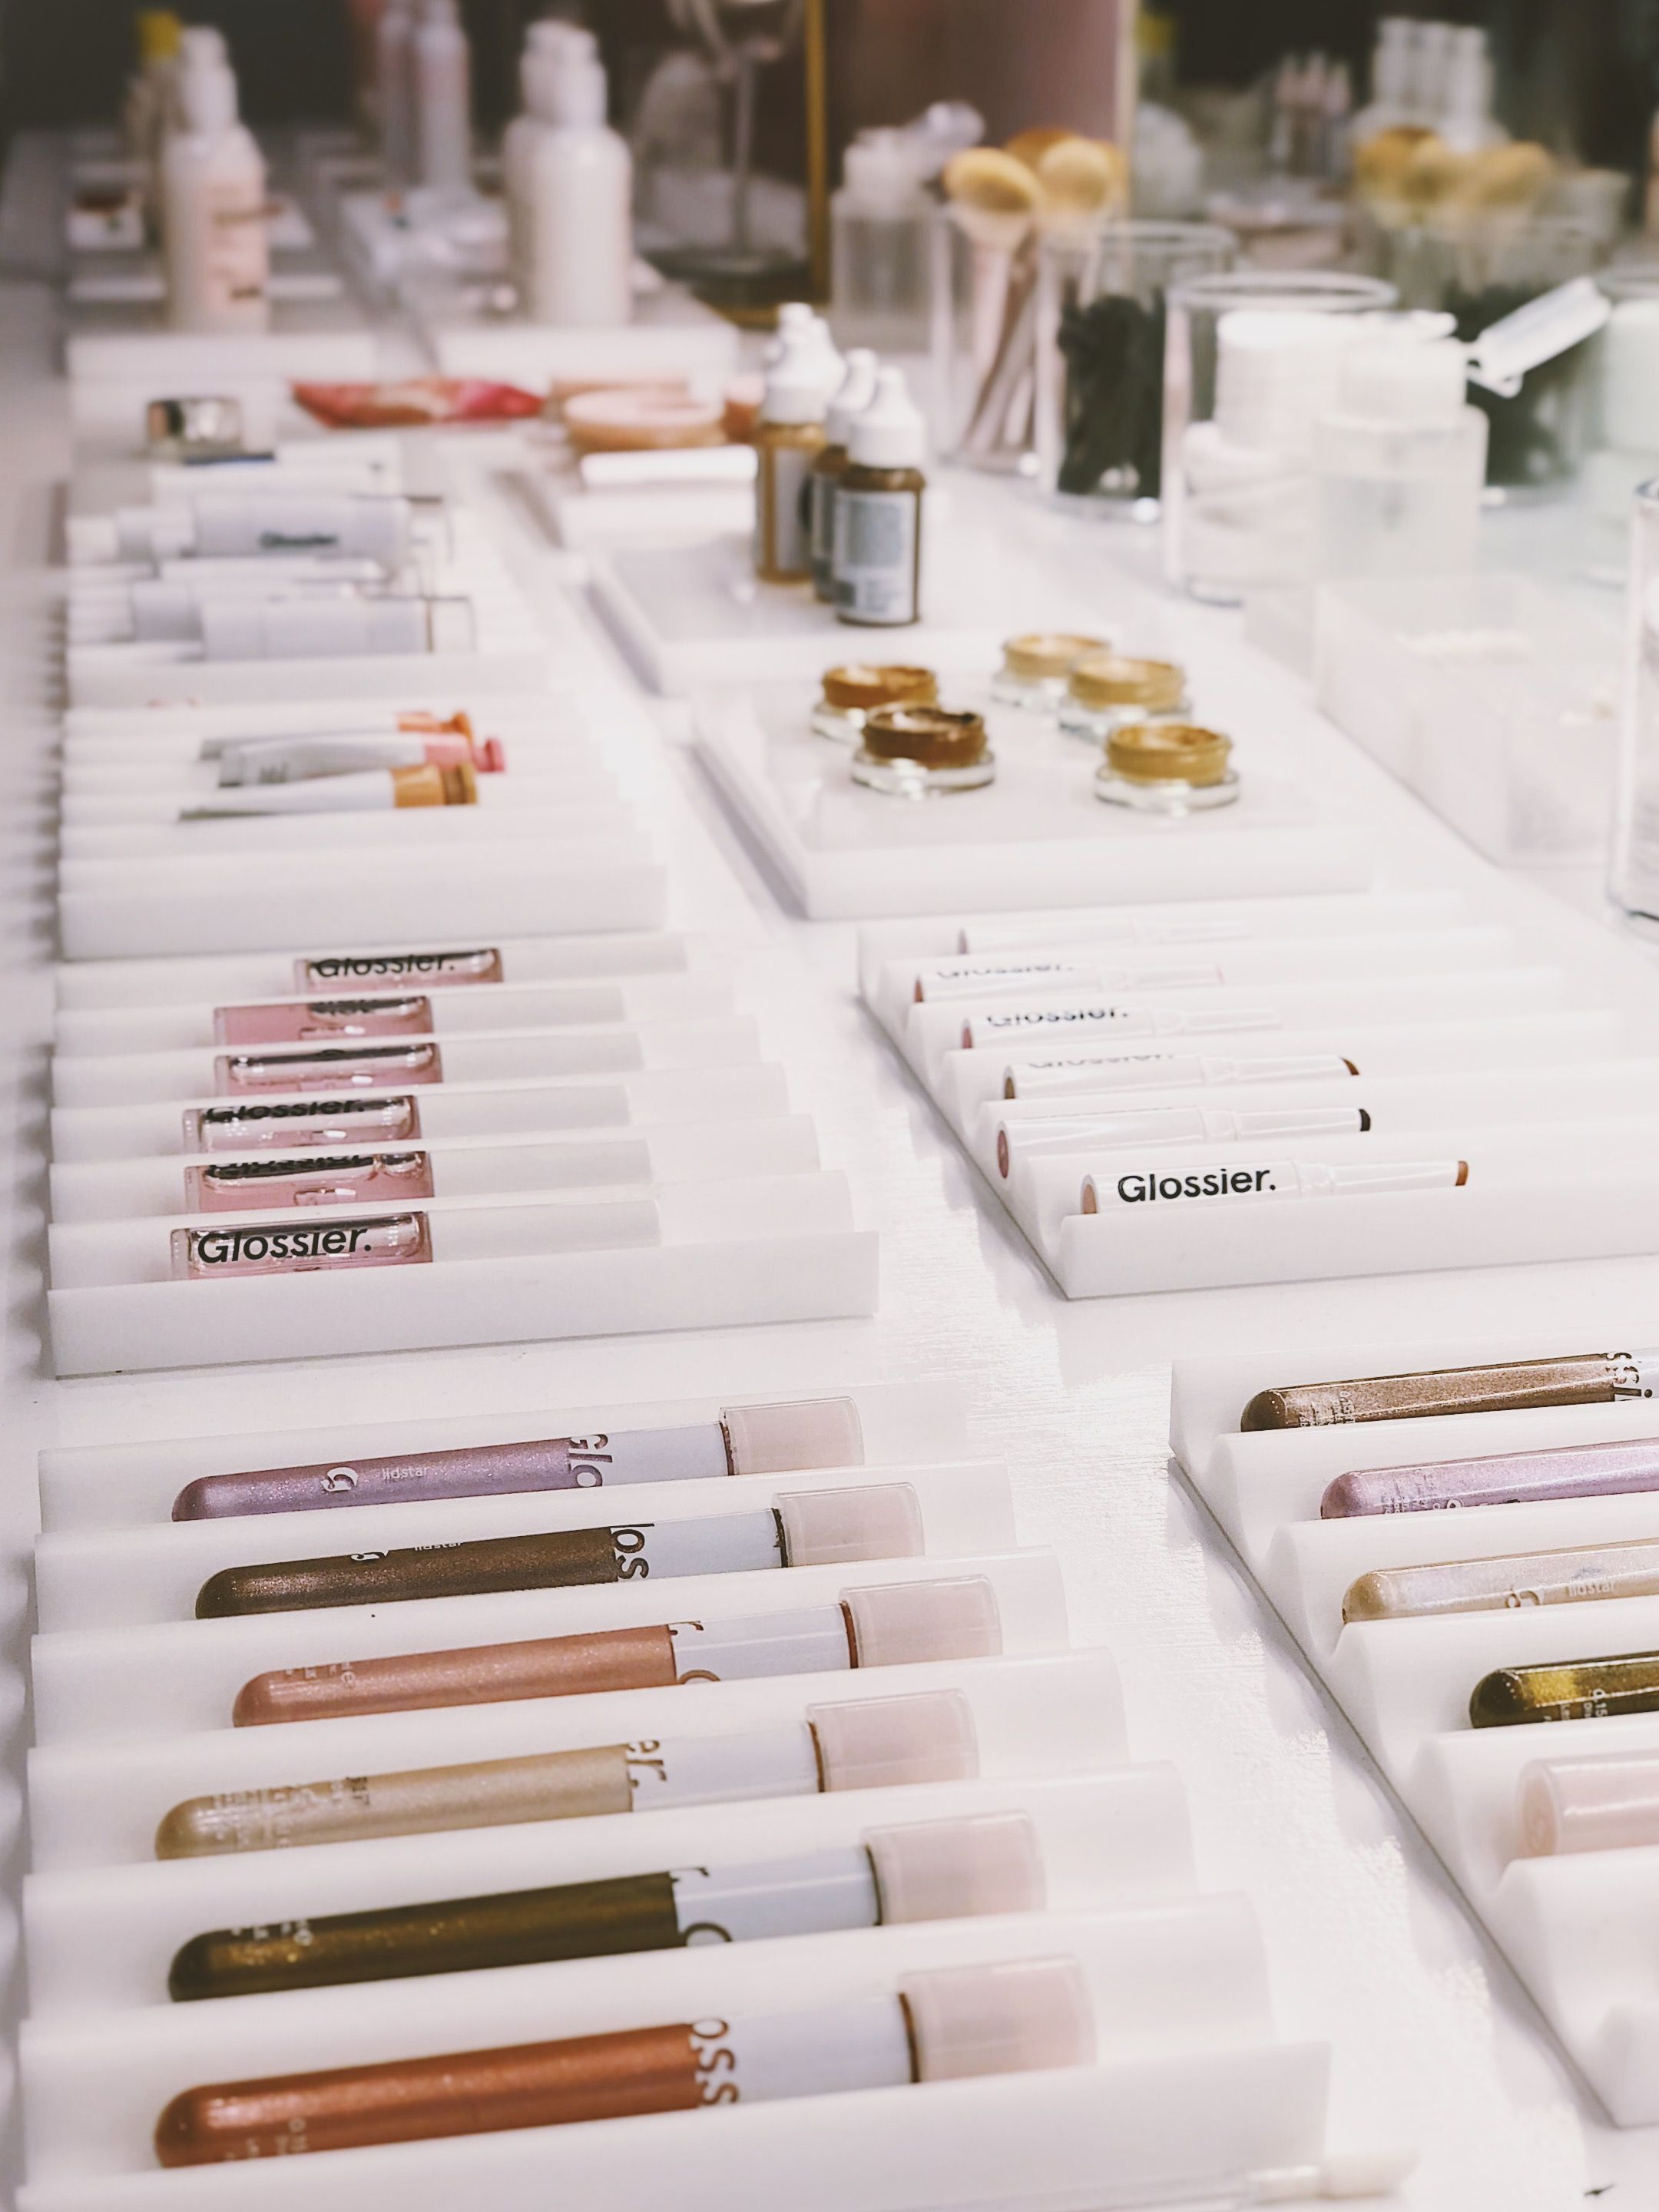 Visiting the Glossier Popup shop Glossier pop up, Pop